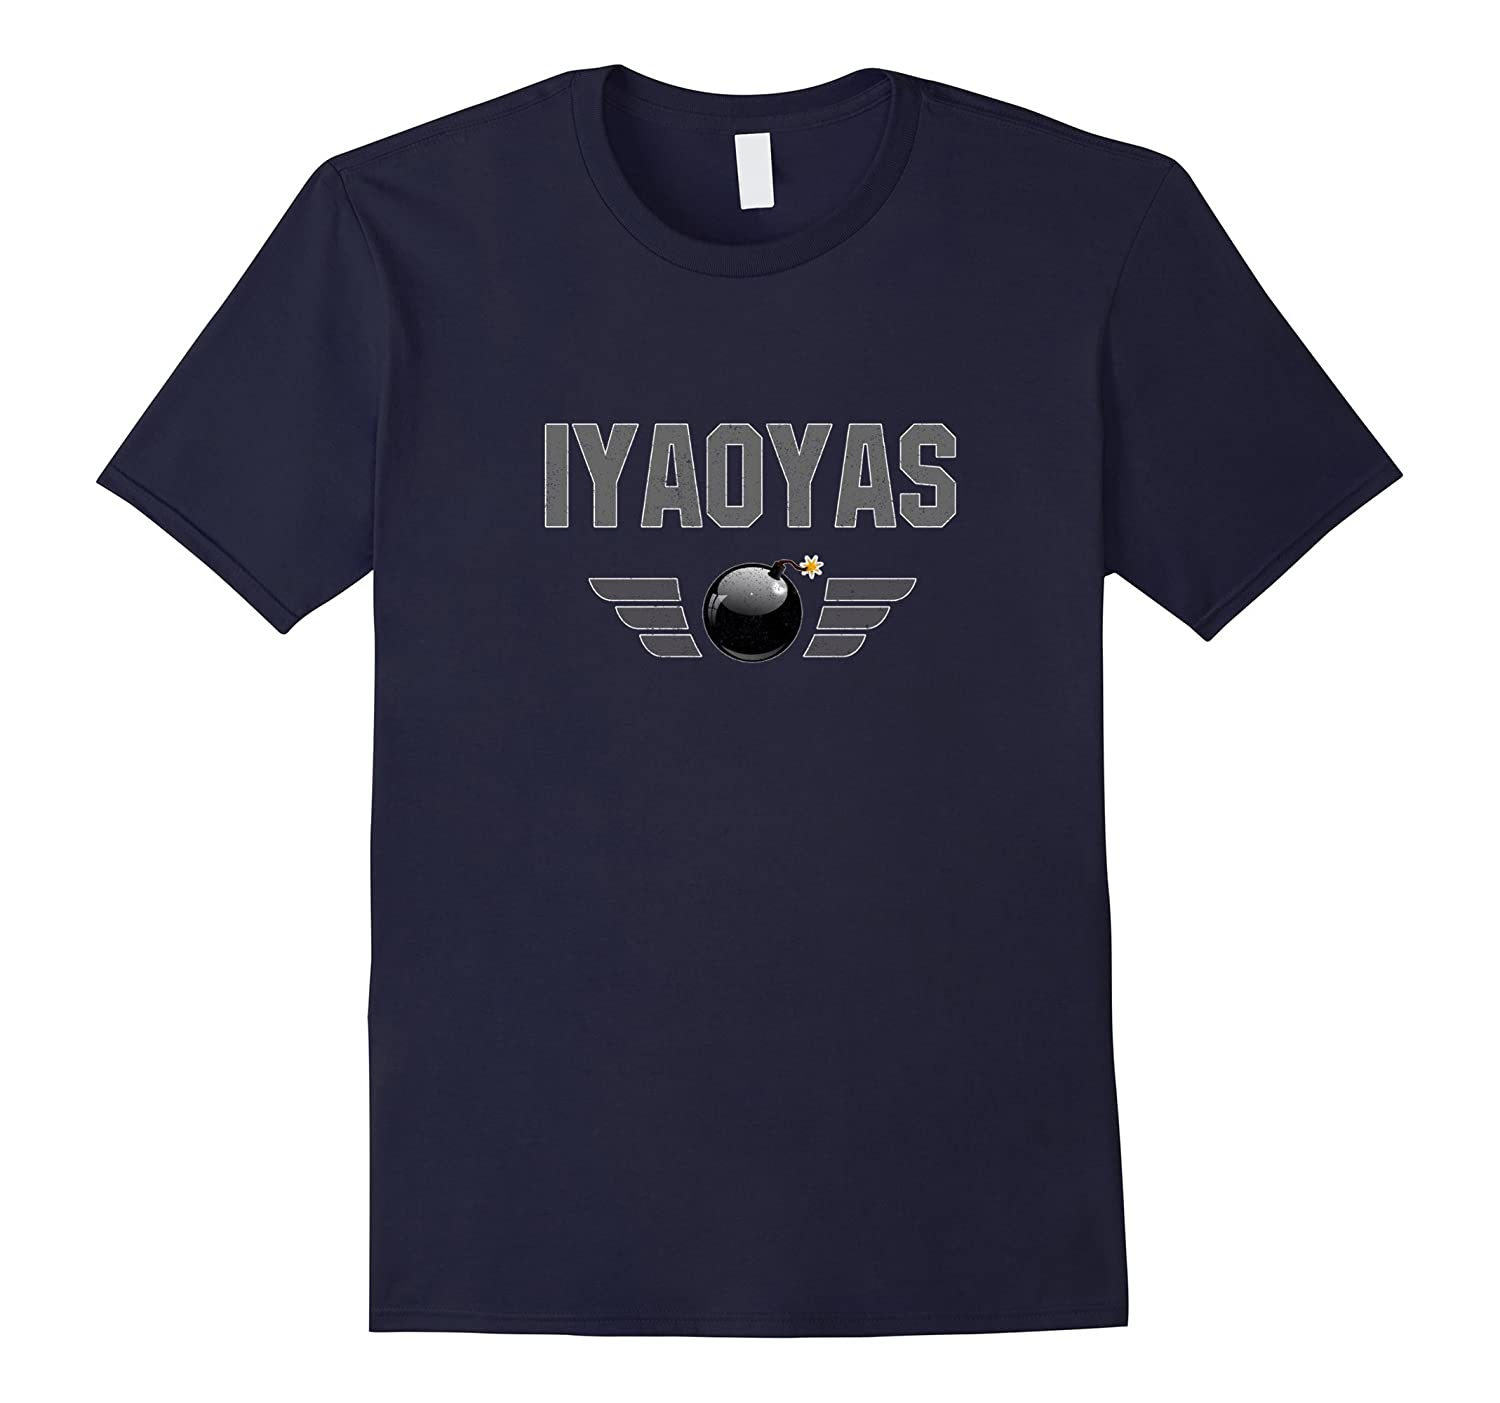 IYAOYAS - Flying ORD - for US Navy Aviation Ordnancemen-Art